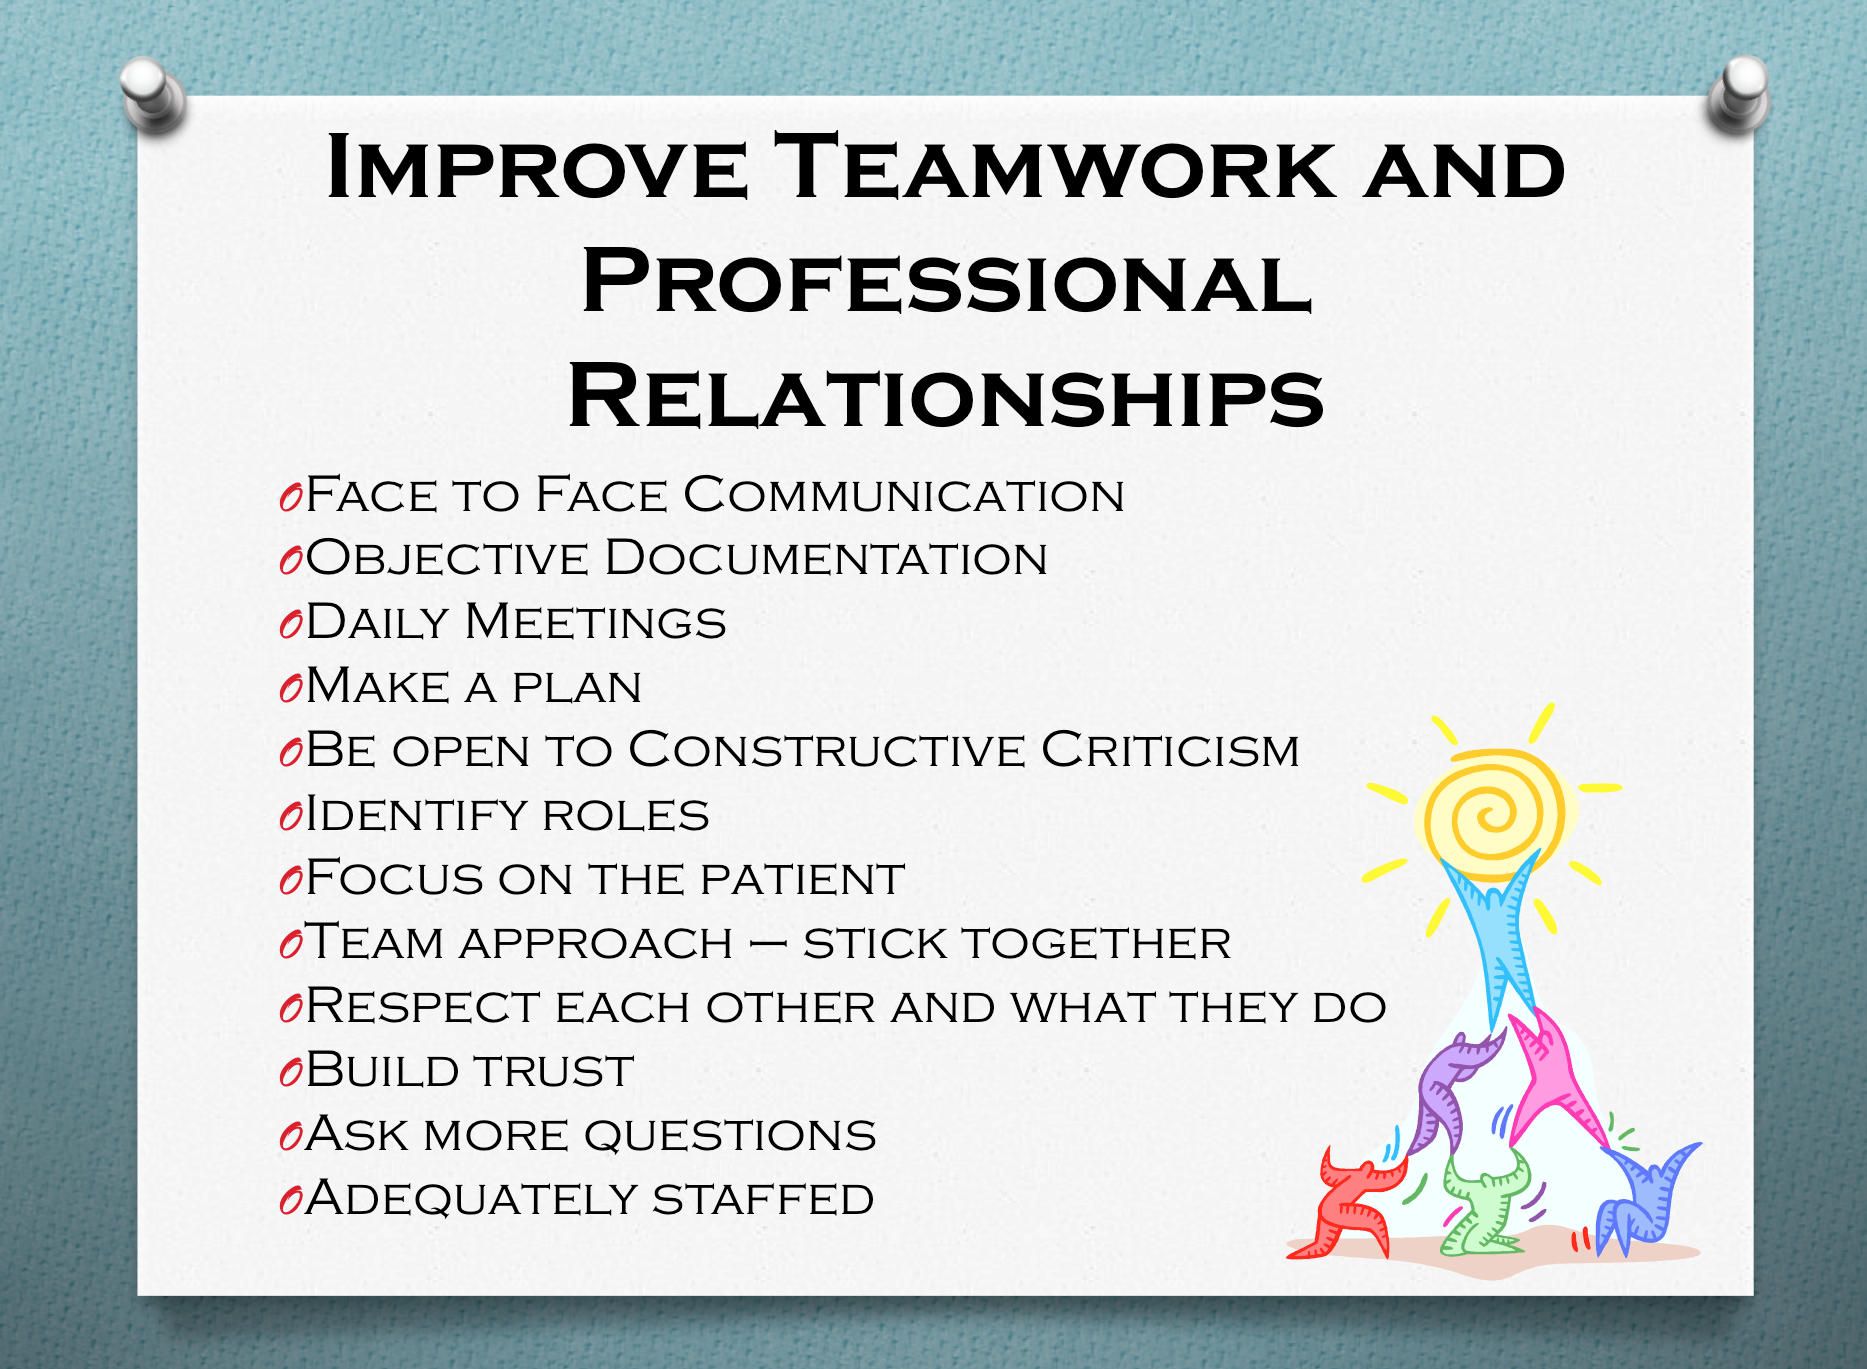 interdisciplinary views on social workers and nurses roles in a list of ways to improve teamwork and professional relationships